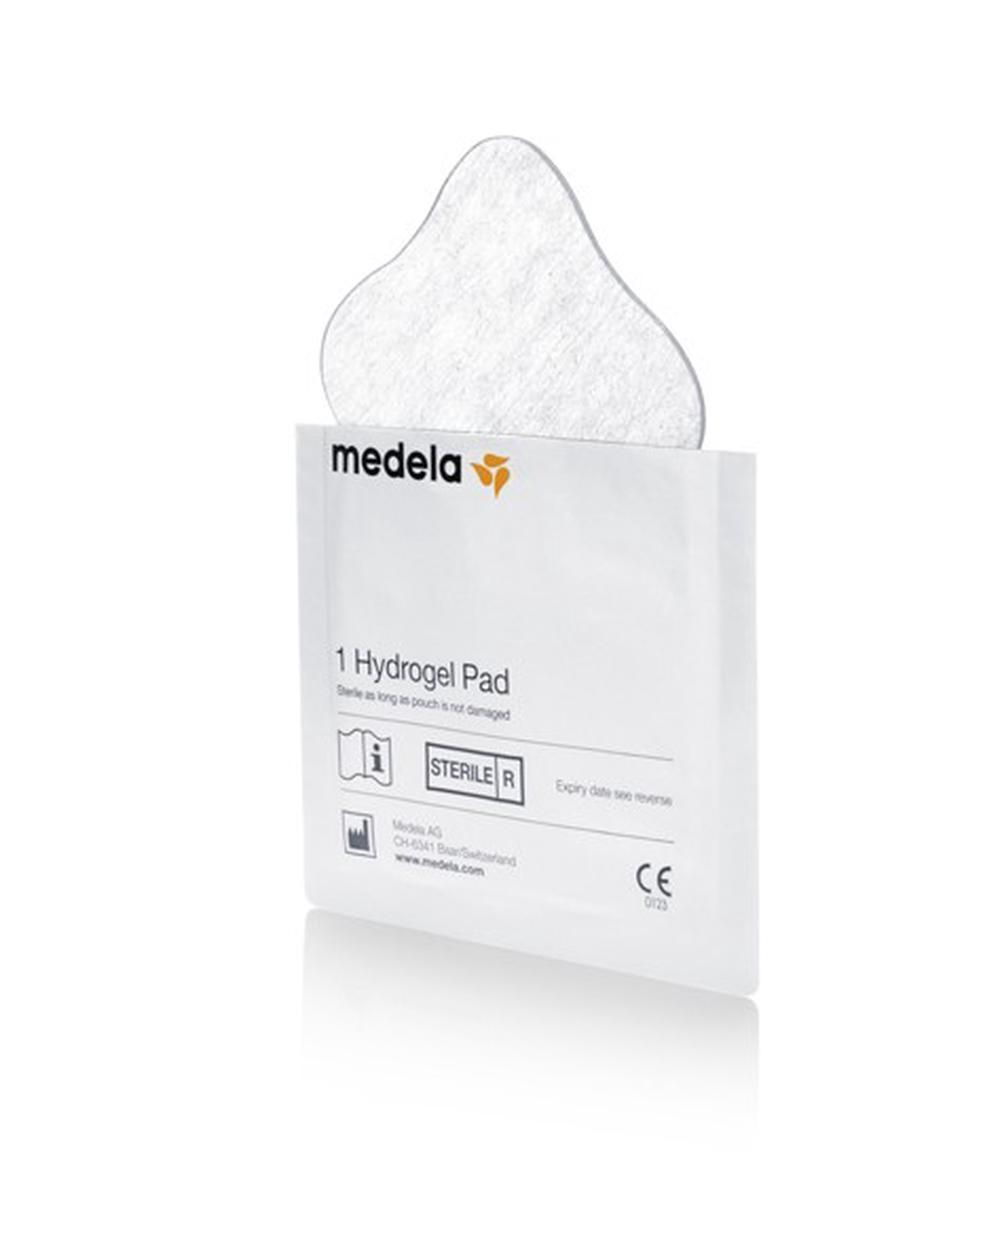 Medela Hydrogel Breast Pads, 4 Pack